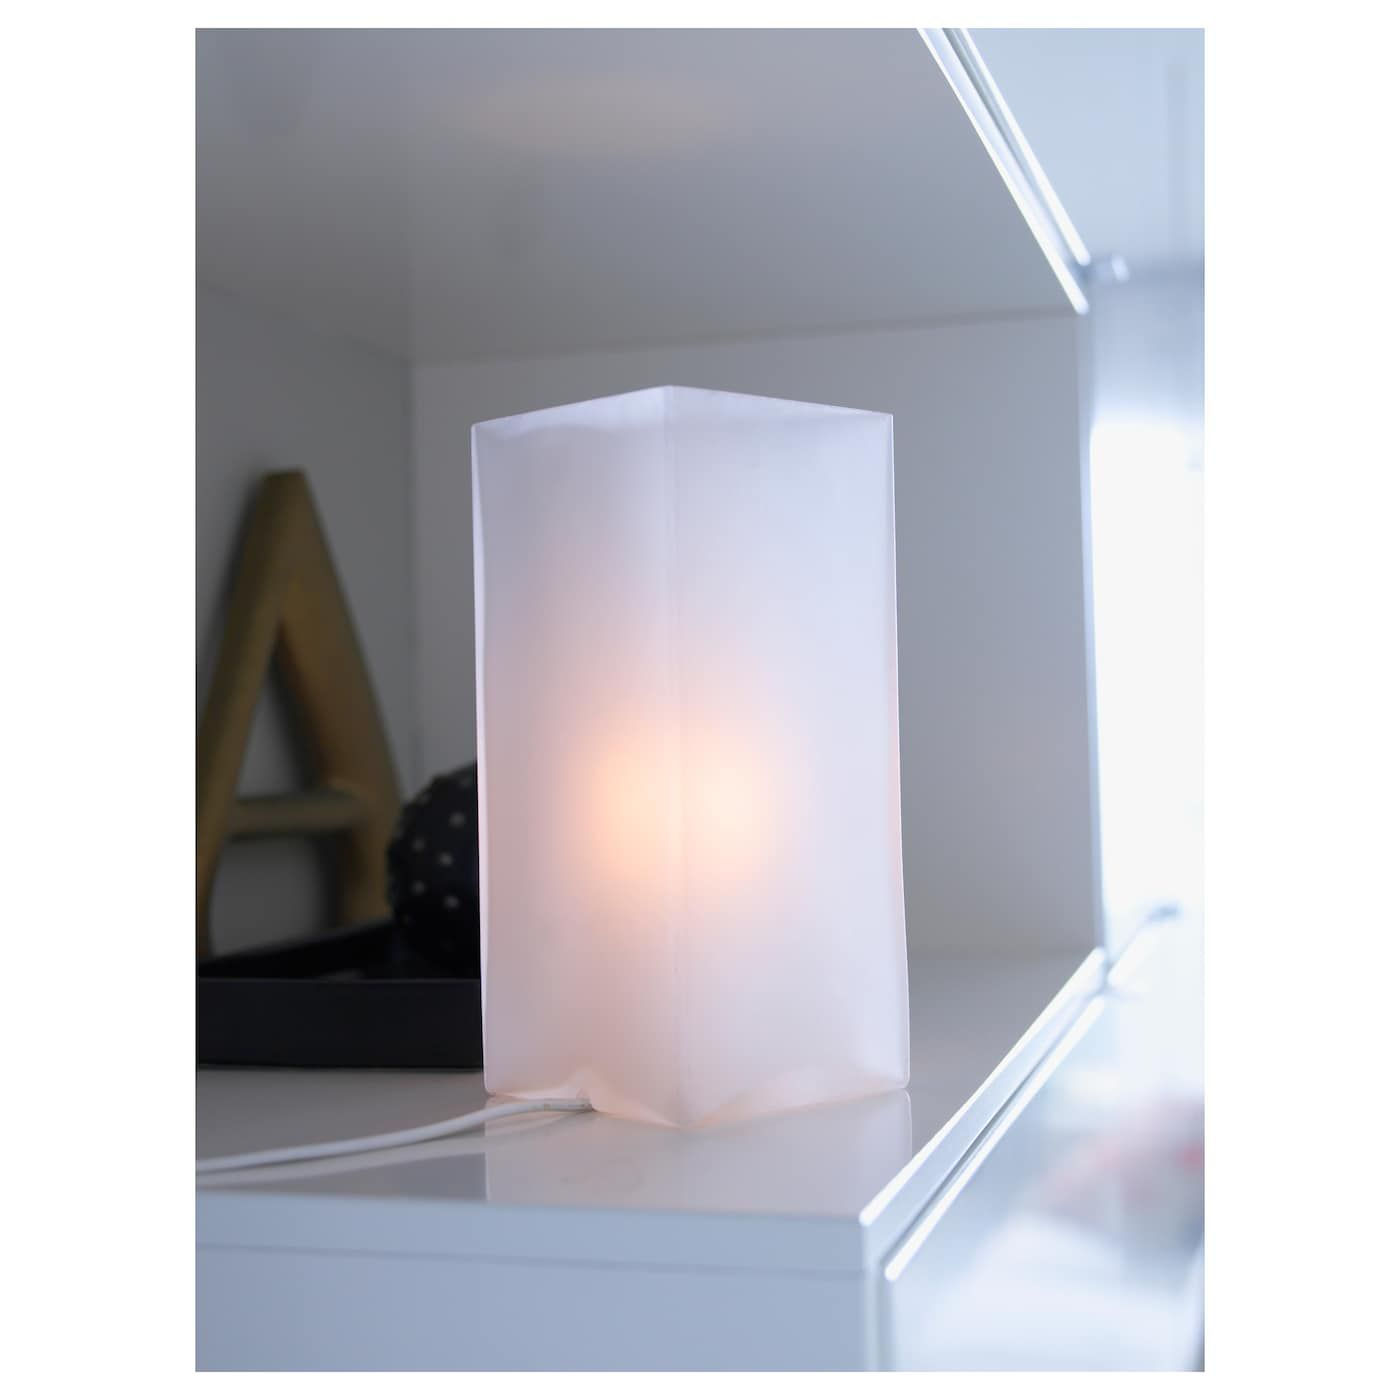 Ikea Grono Frosted Glass White Table Lamp With Led Bulb White Table Lamp Table Lamp Table